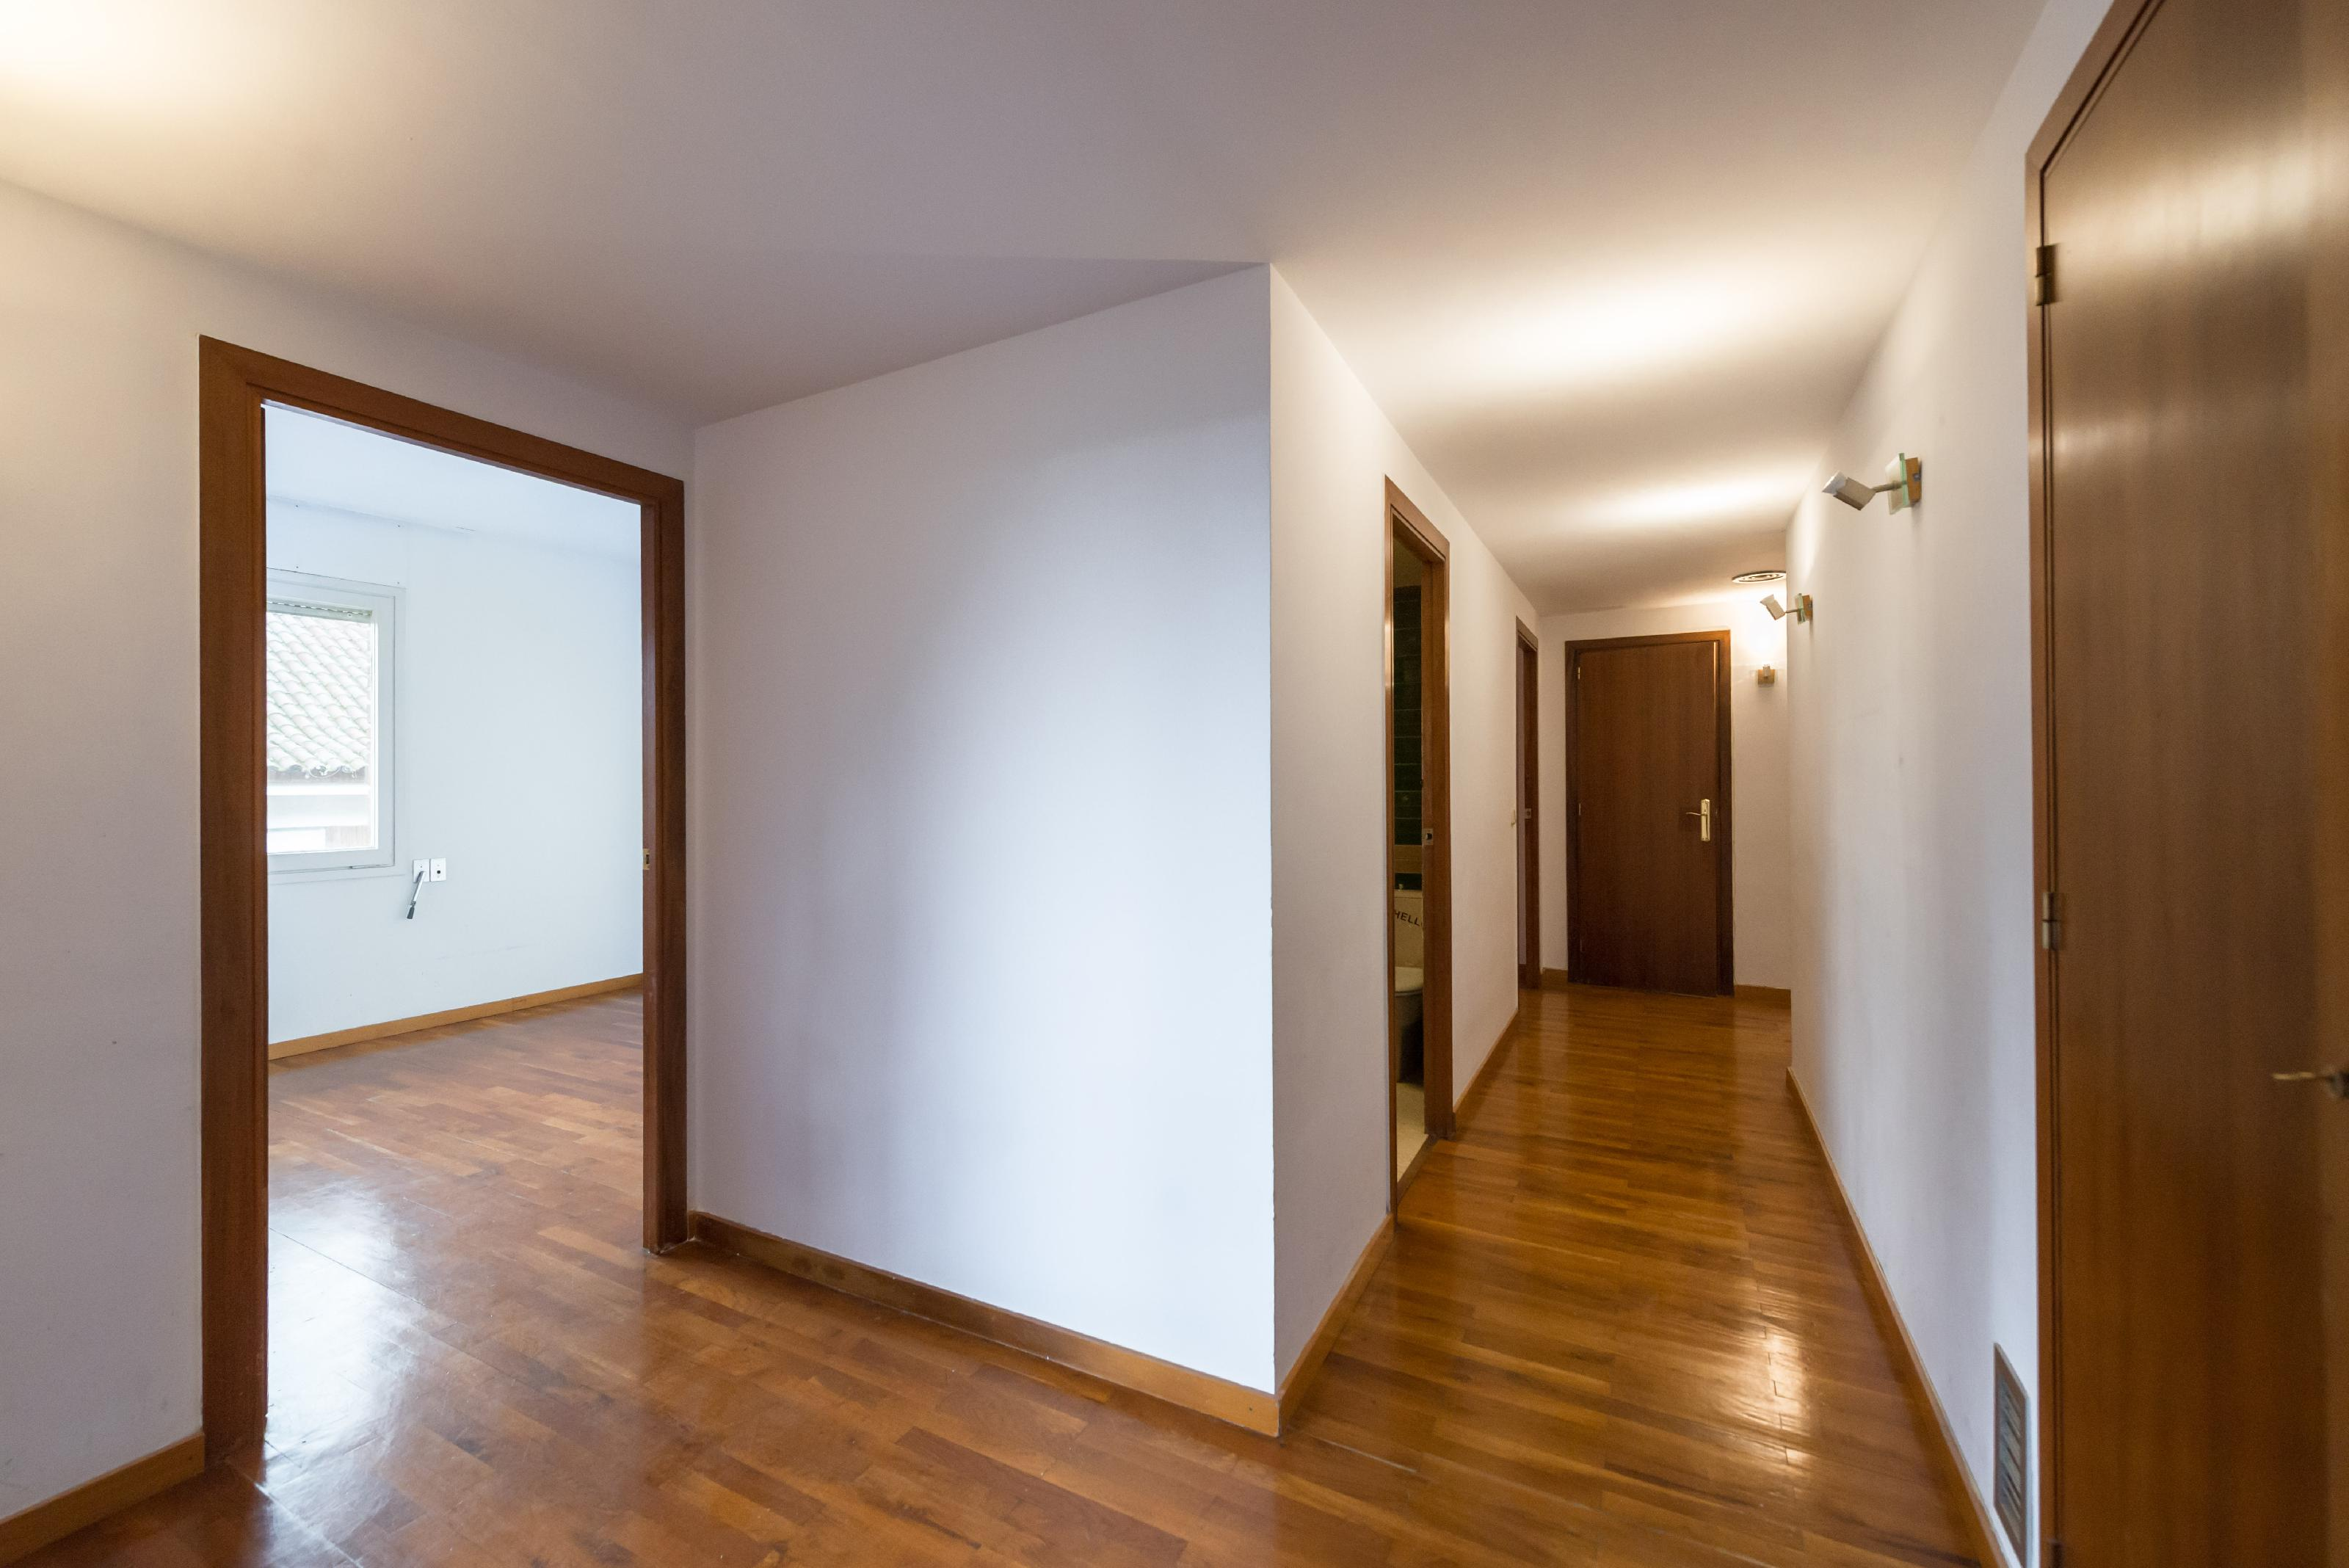 245495 Penthouse for sale in Les Corts, Pedralbes 30